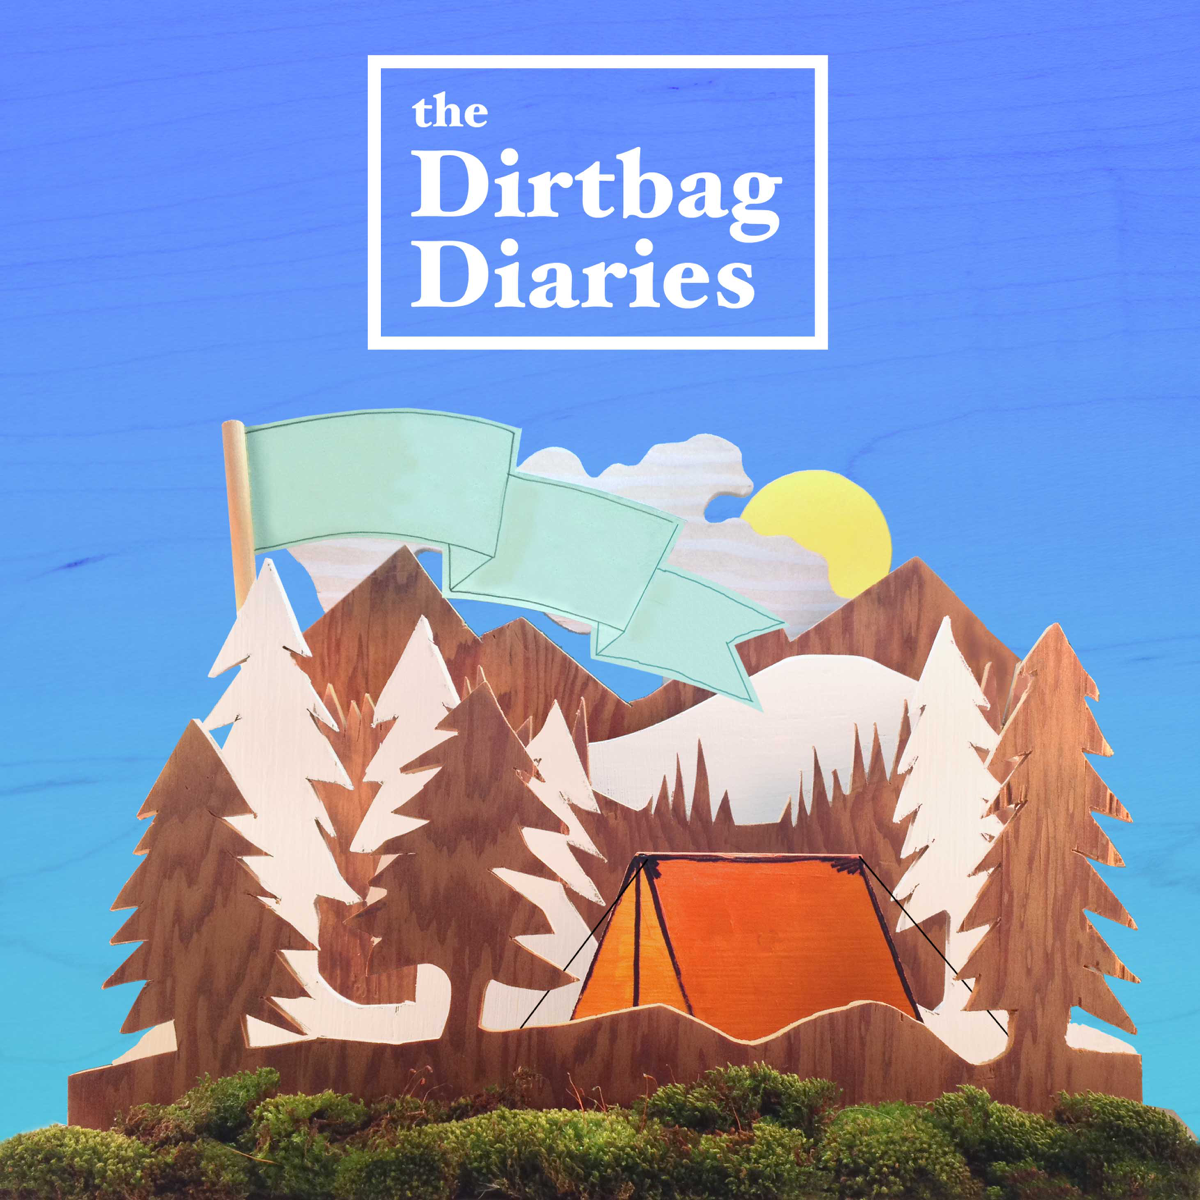 Top 2 episodes | Best episodes of The Dirtbag Diaries